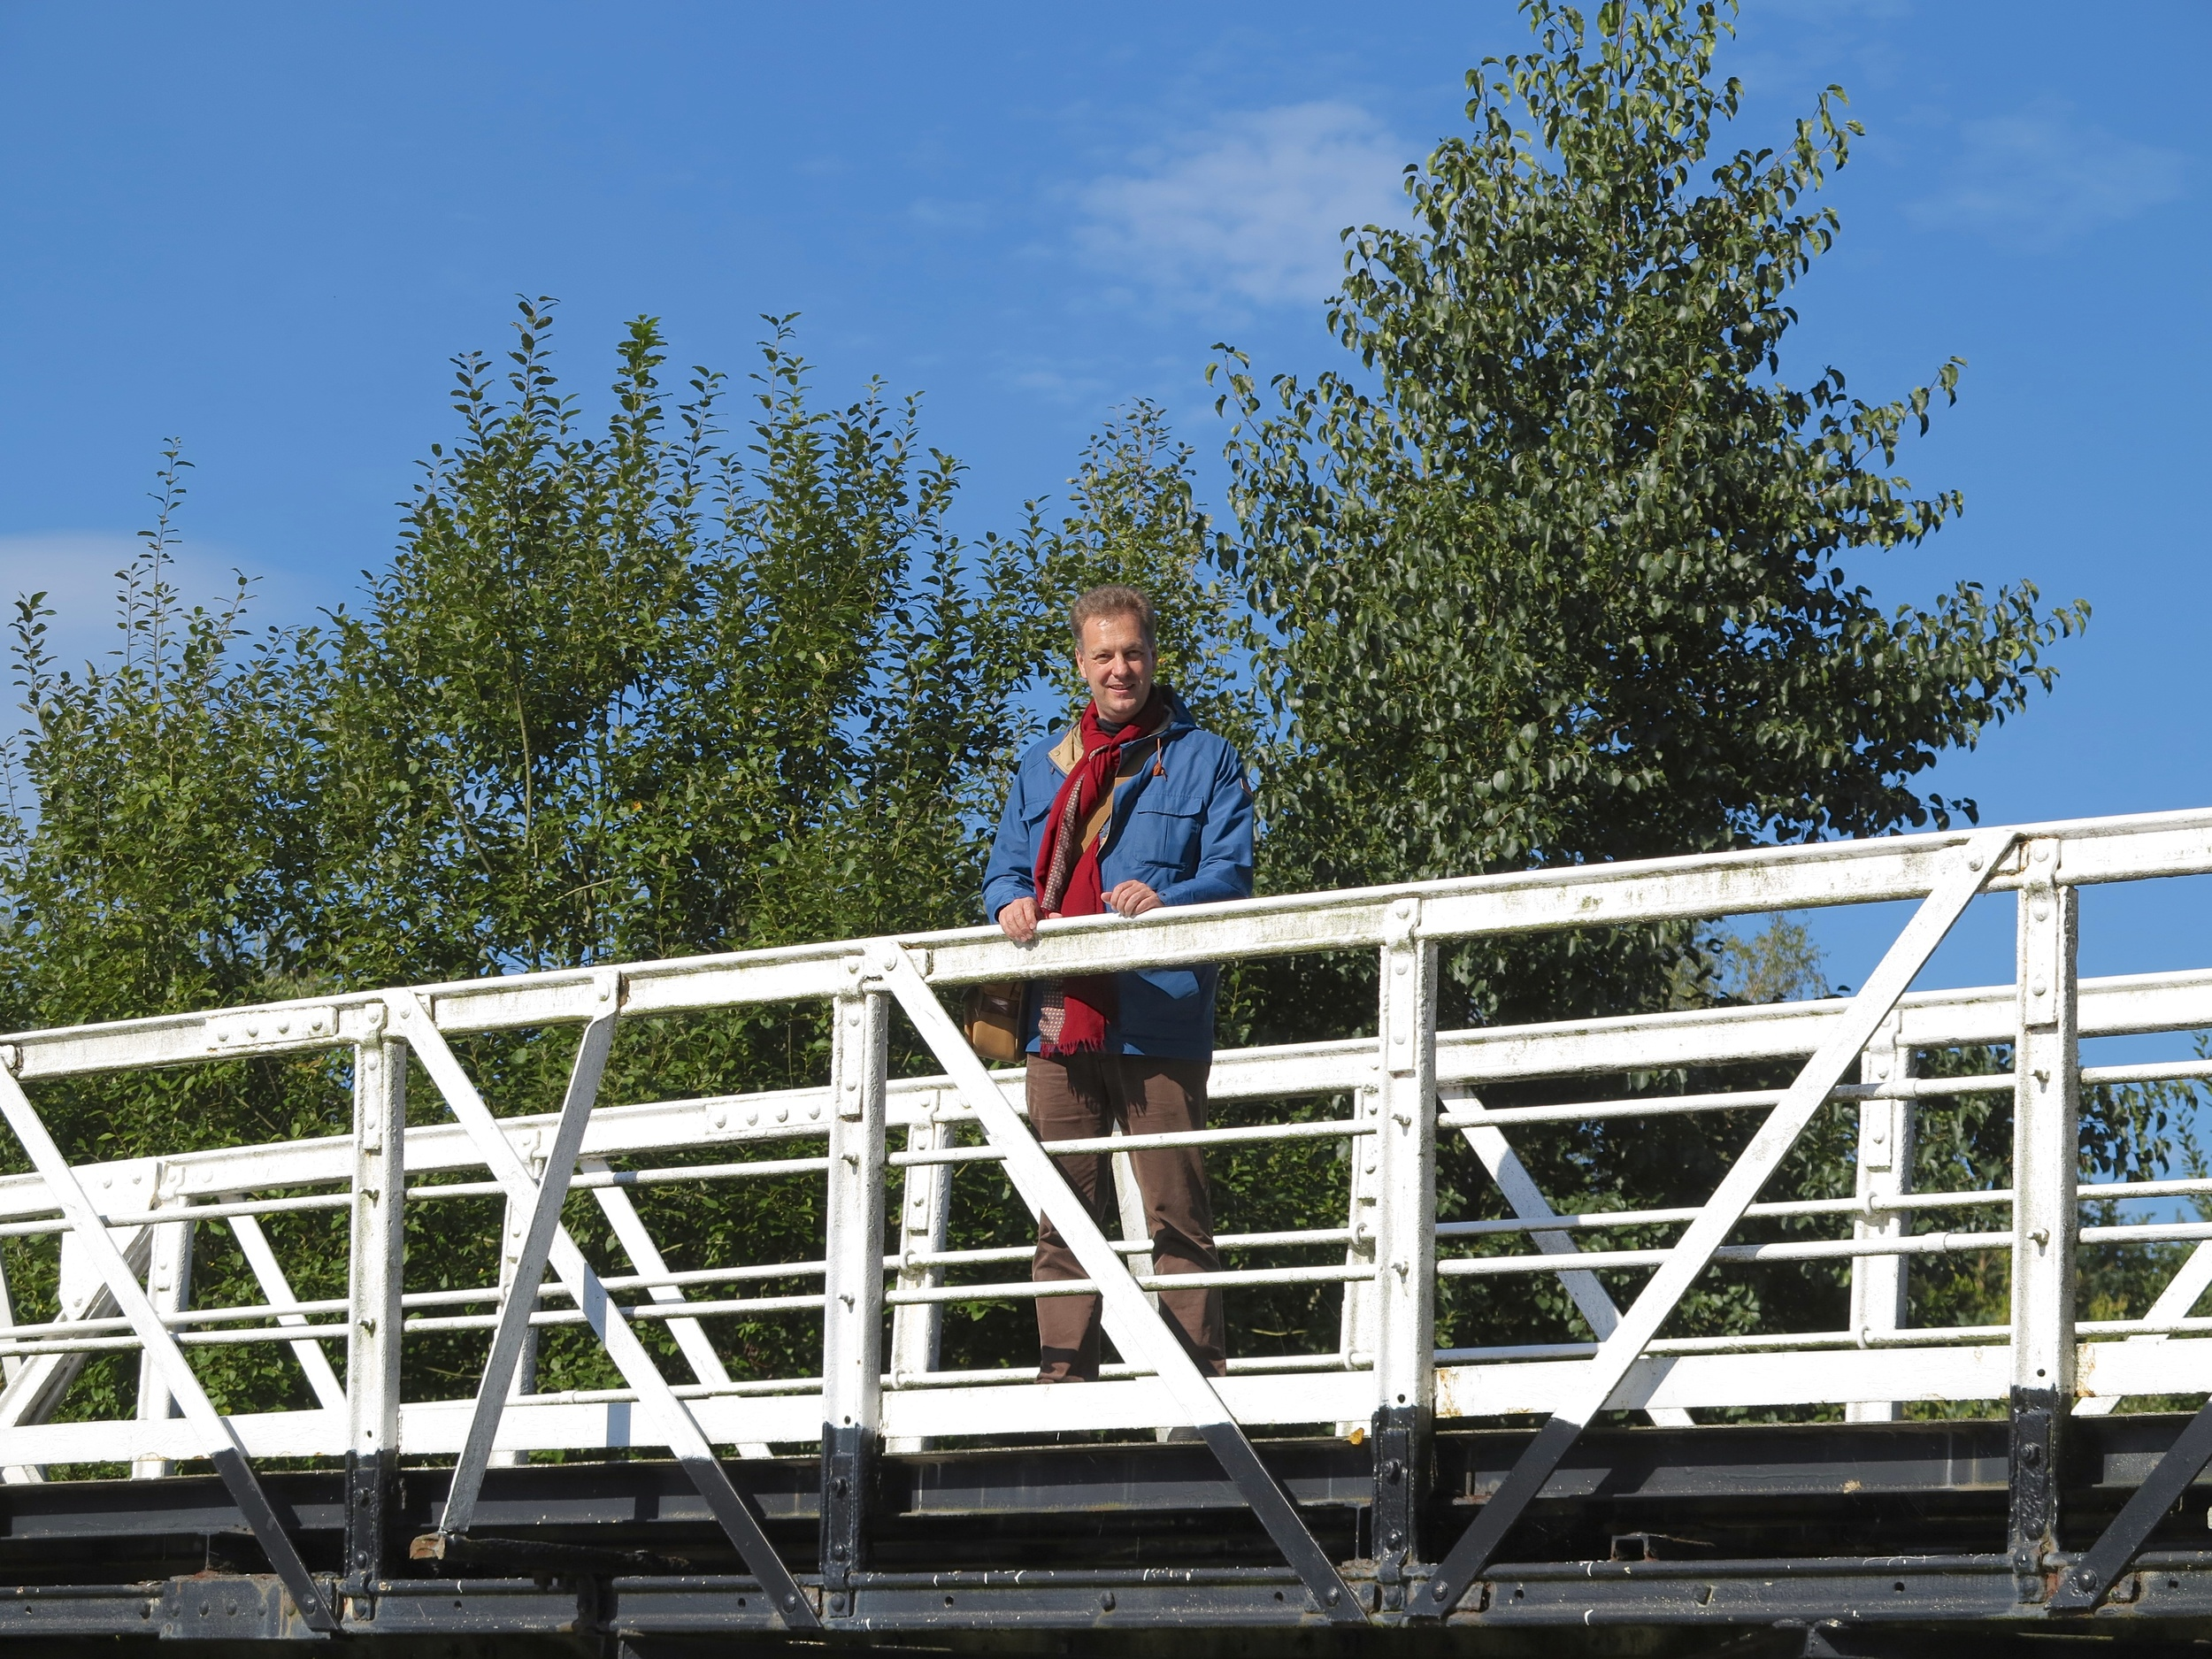 Crossing a bridge over the canal in Stoke-on-Trent (2013).